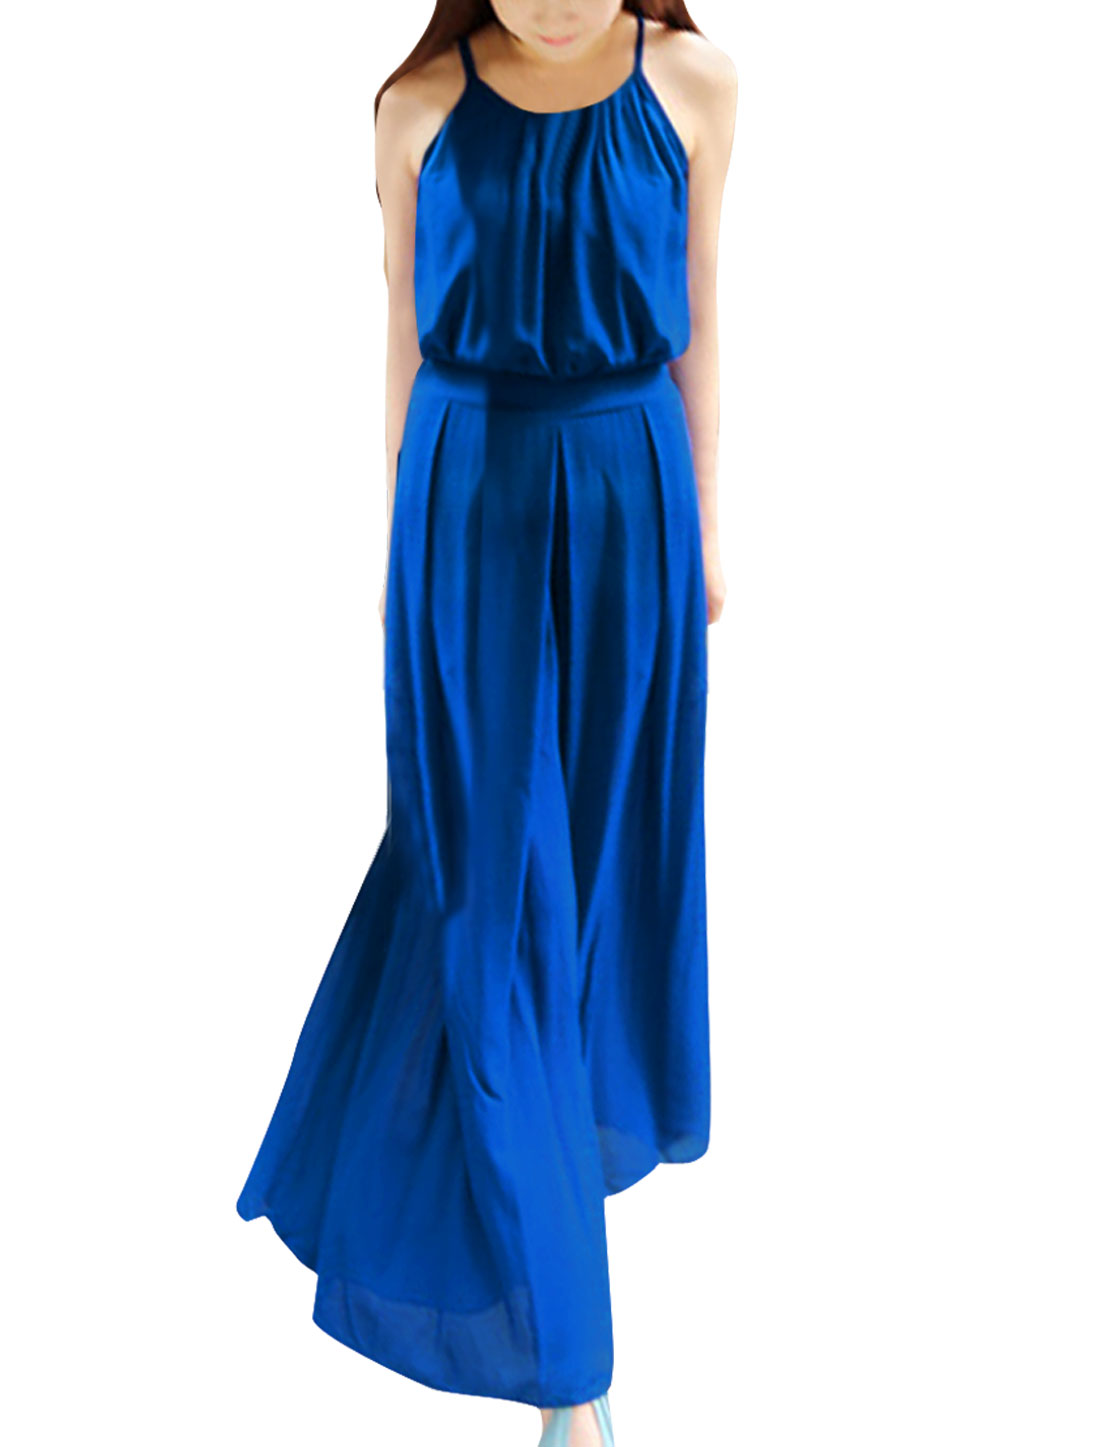 Ladies Spaghetti Straps Sleeveless Solid Color Royalblue Wide-Leg Jumpsuit S